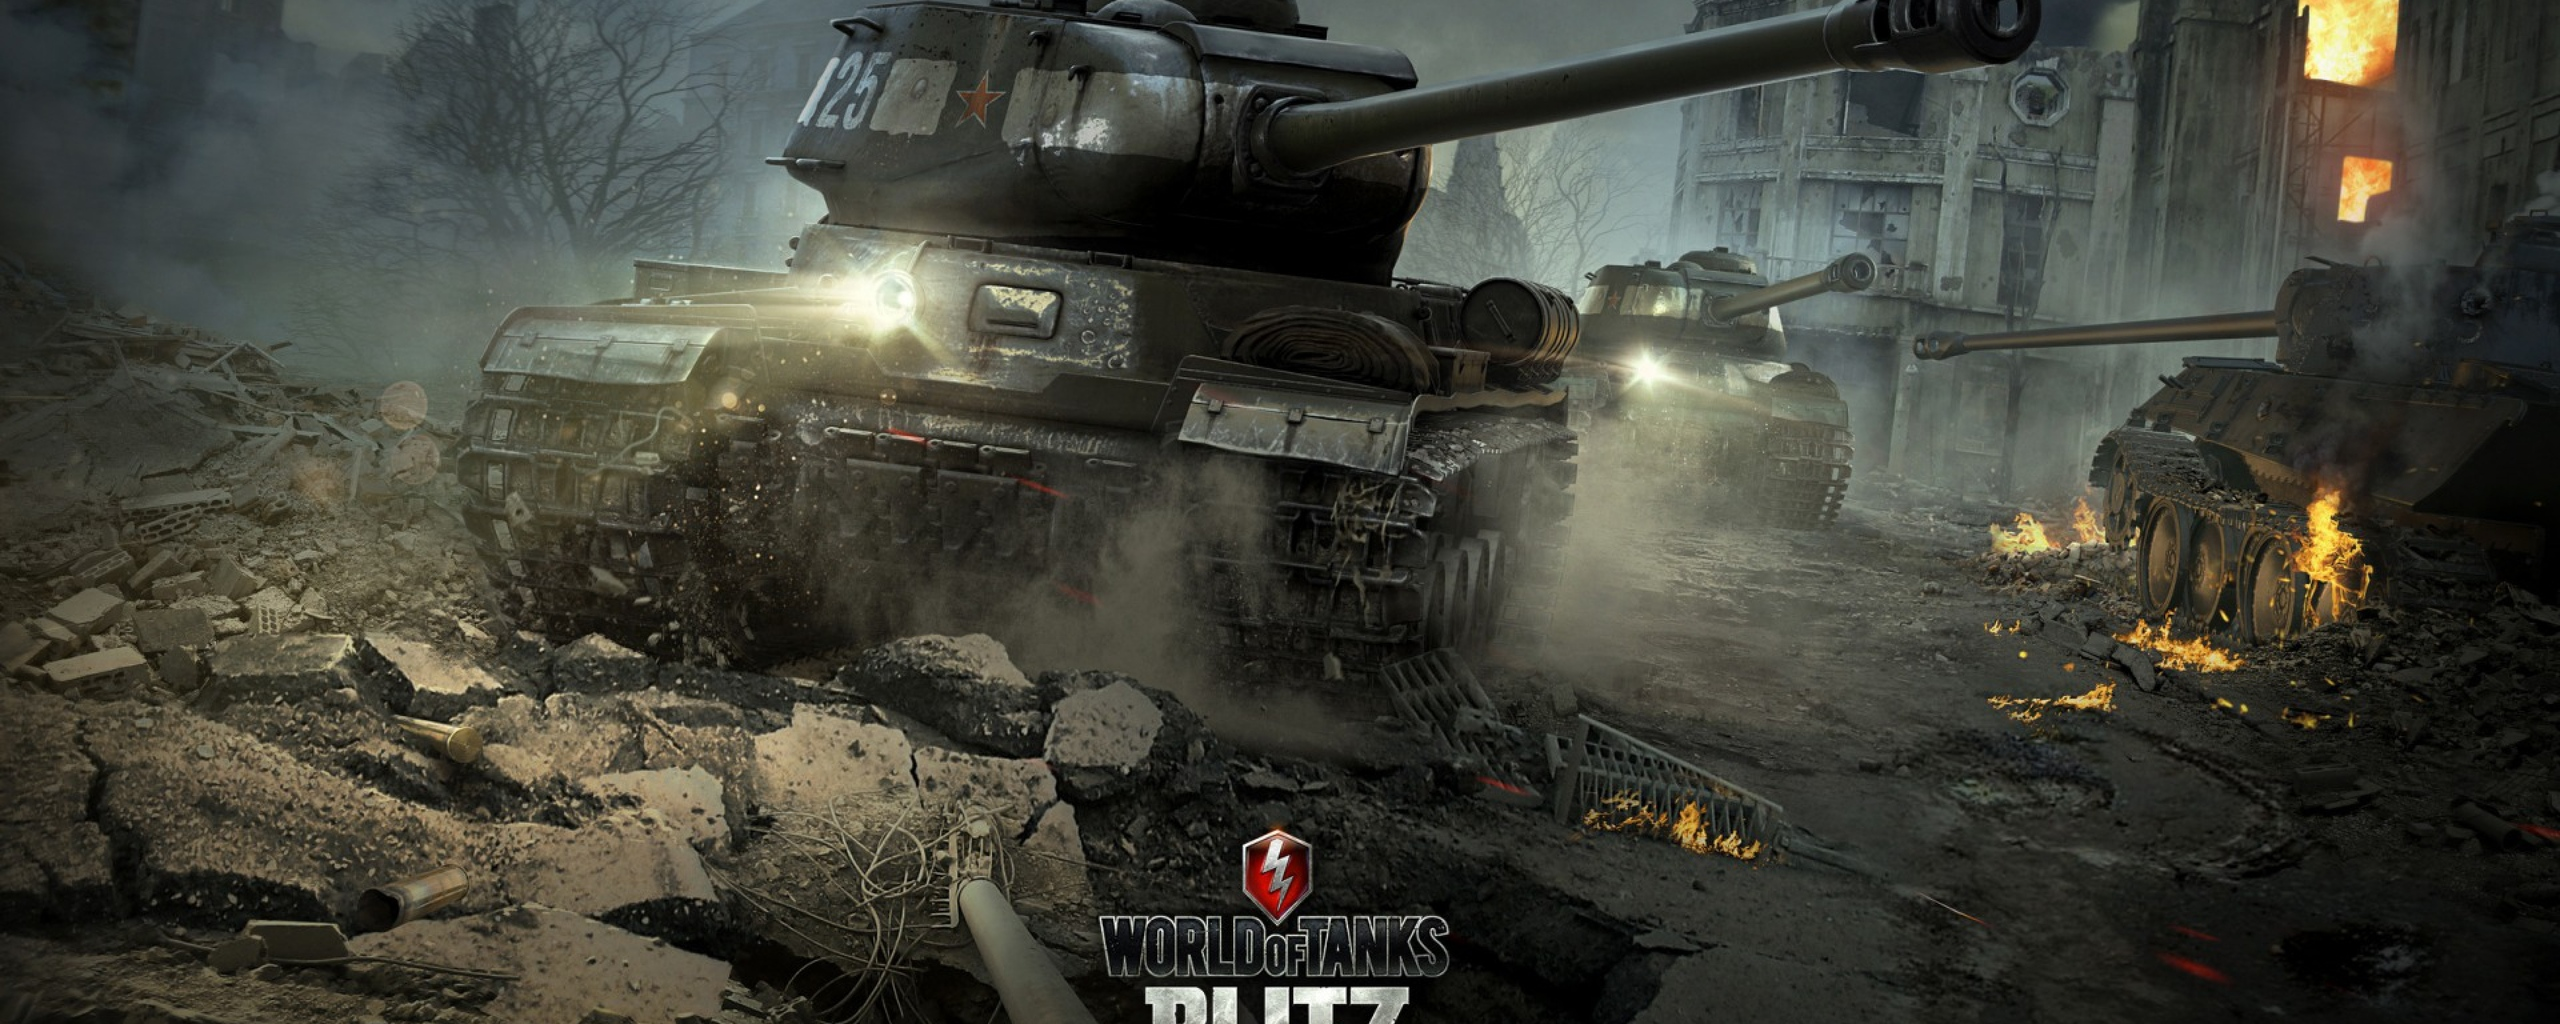 2016-world-of-tanks.jpg